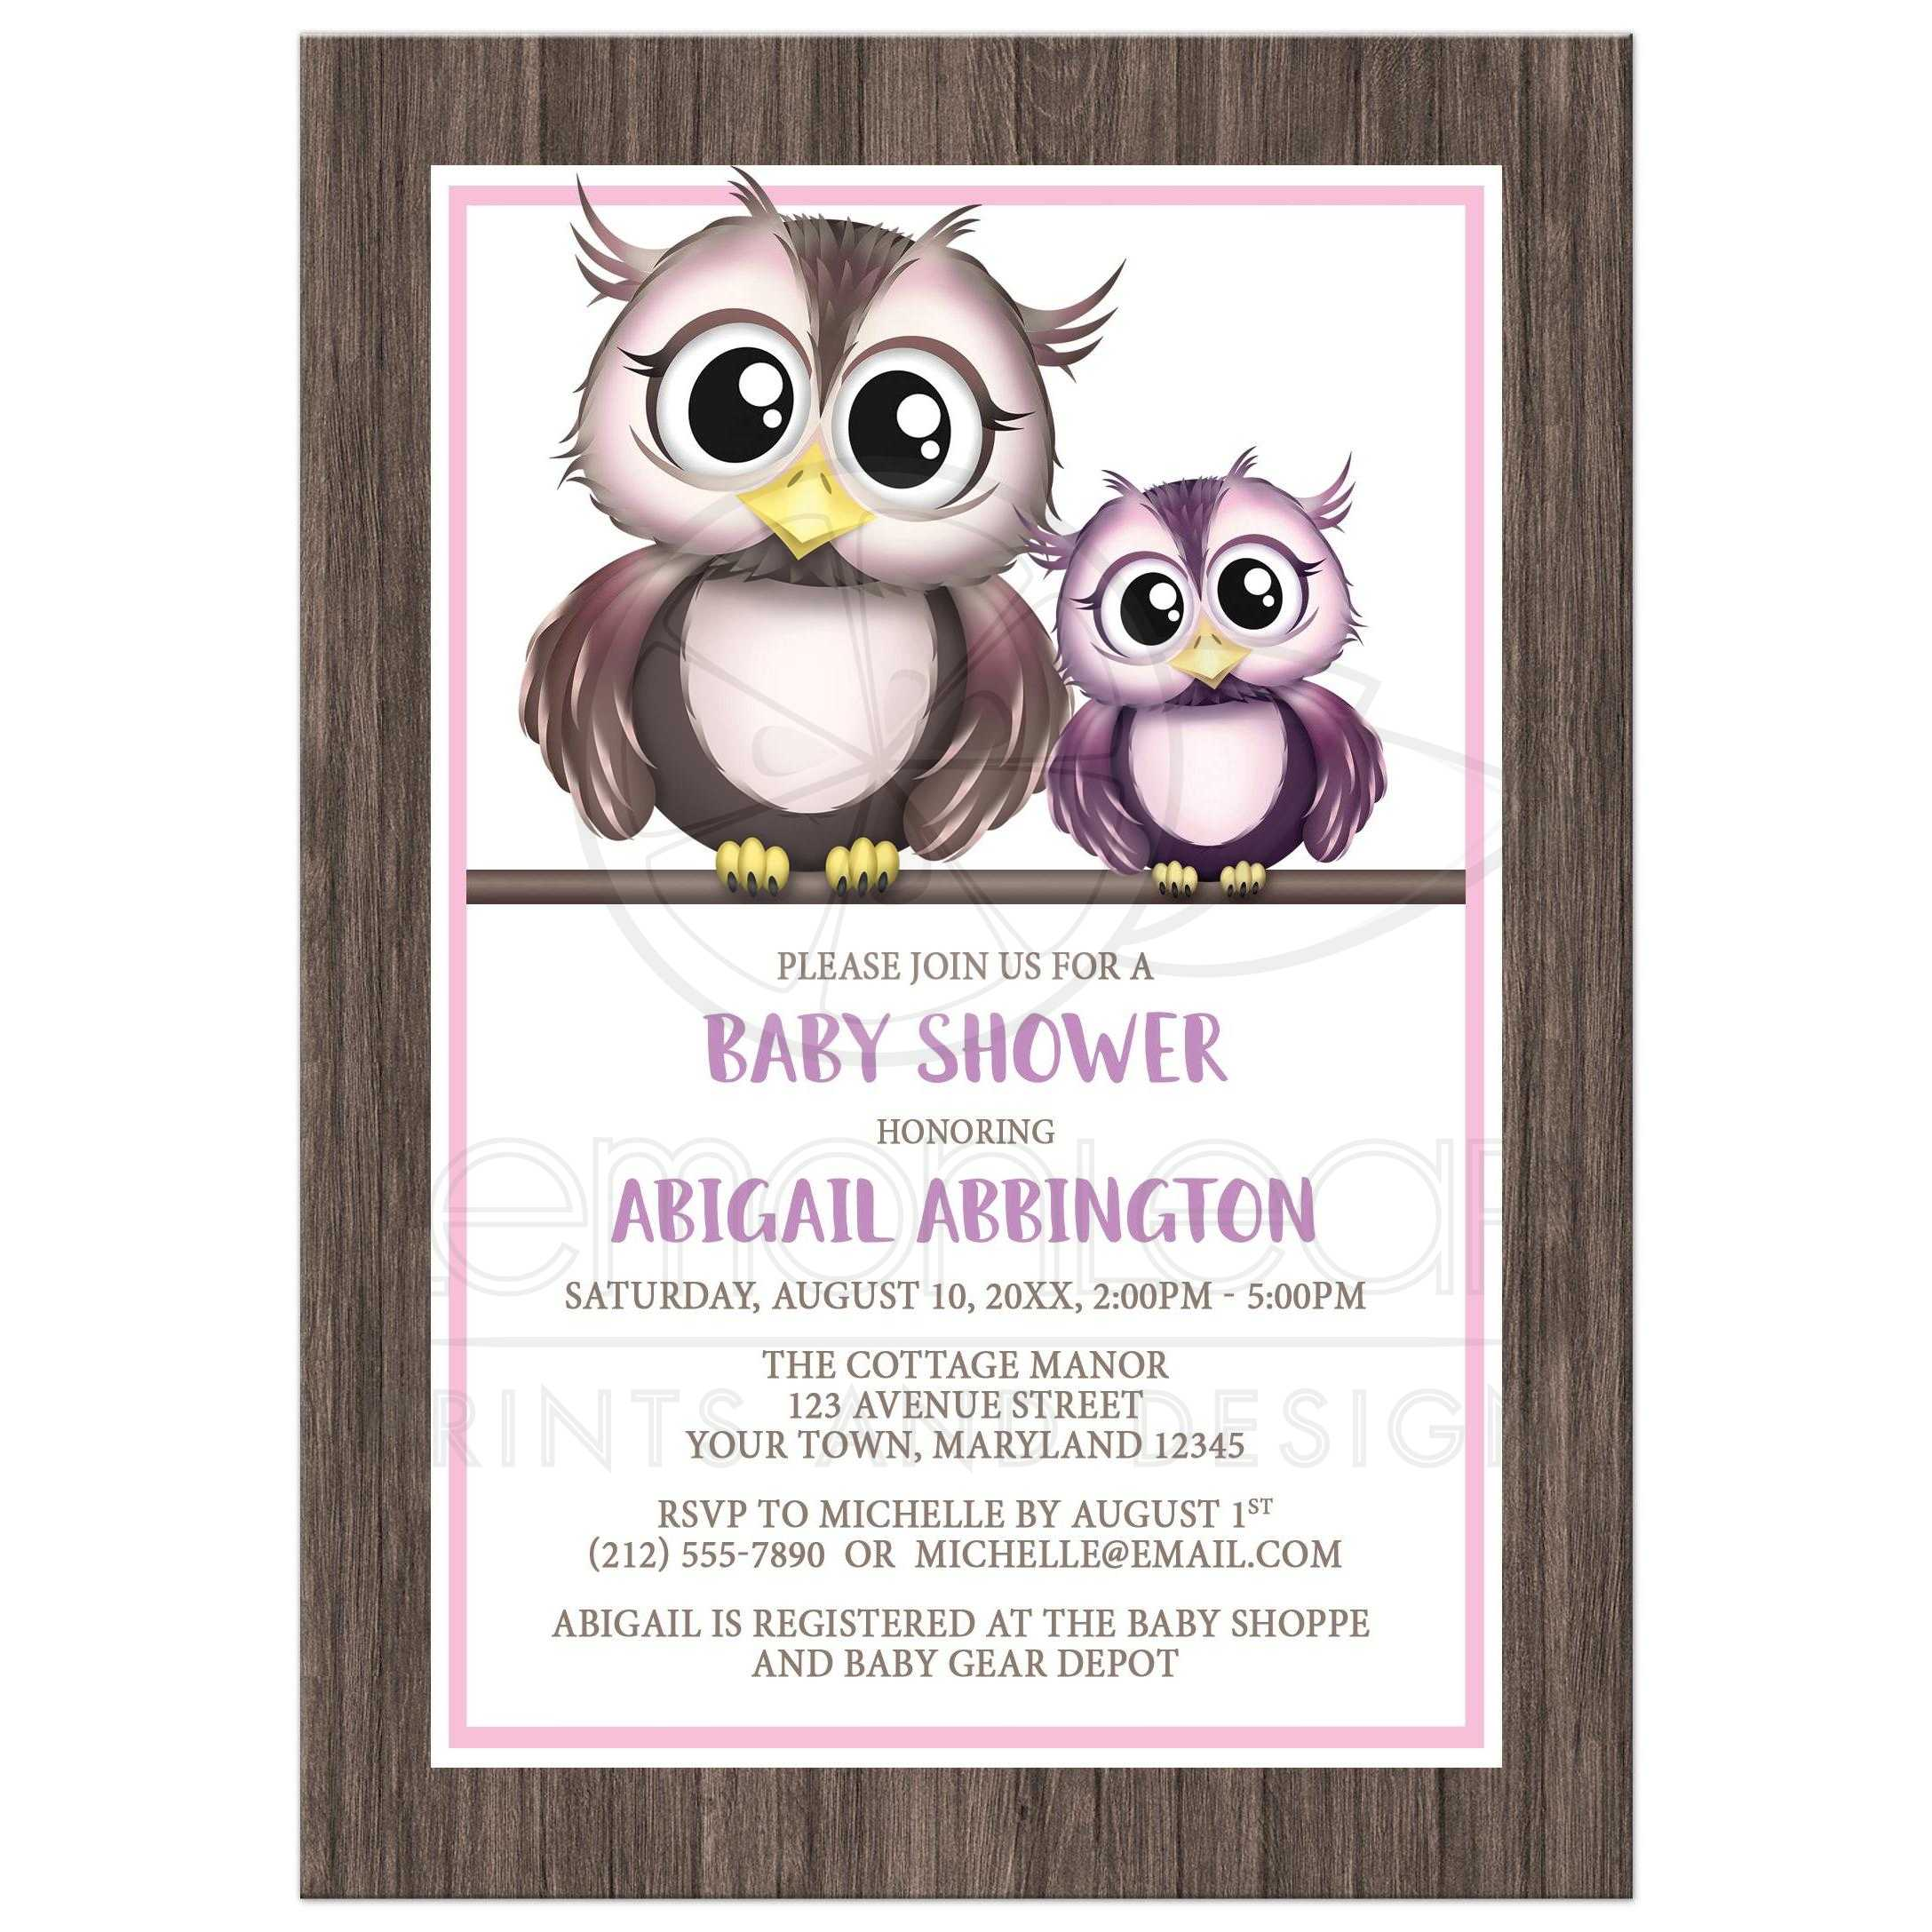 Baby shower invitations owls pink and purple with rustic wood filmwisefo